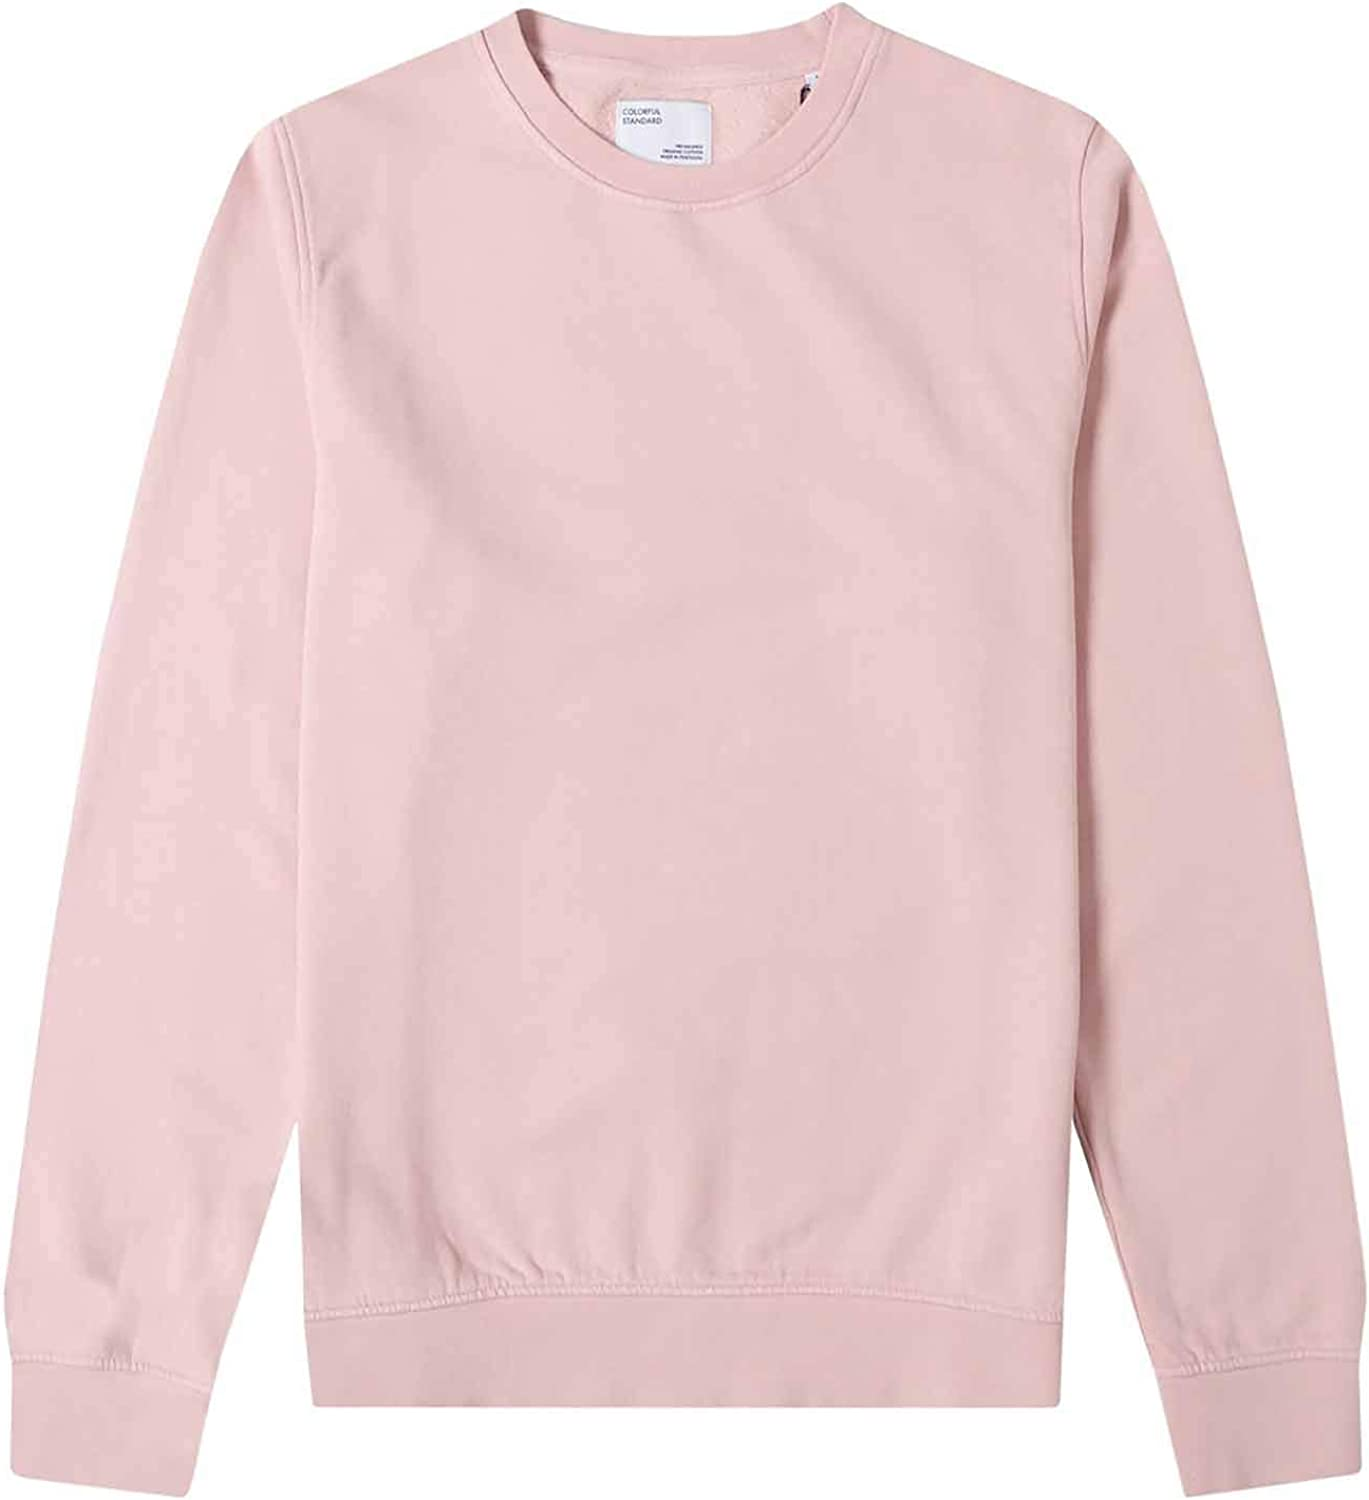 Colorful Standard Classic Max 78% OFF Organic Crew Small Sweater Pink Faded Fashion